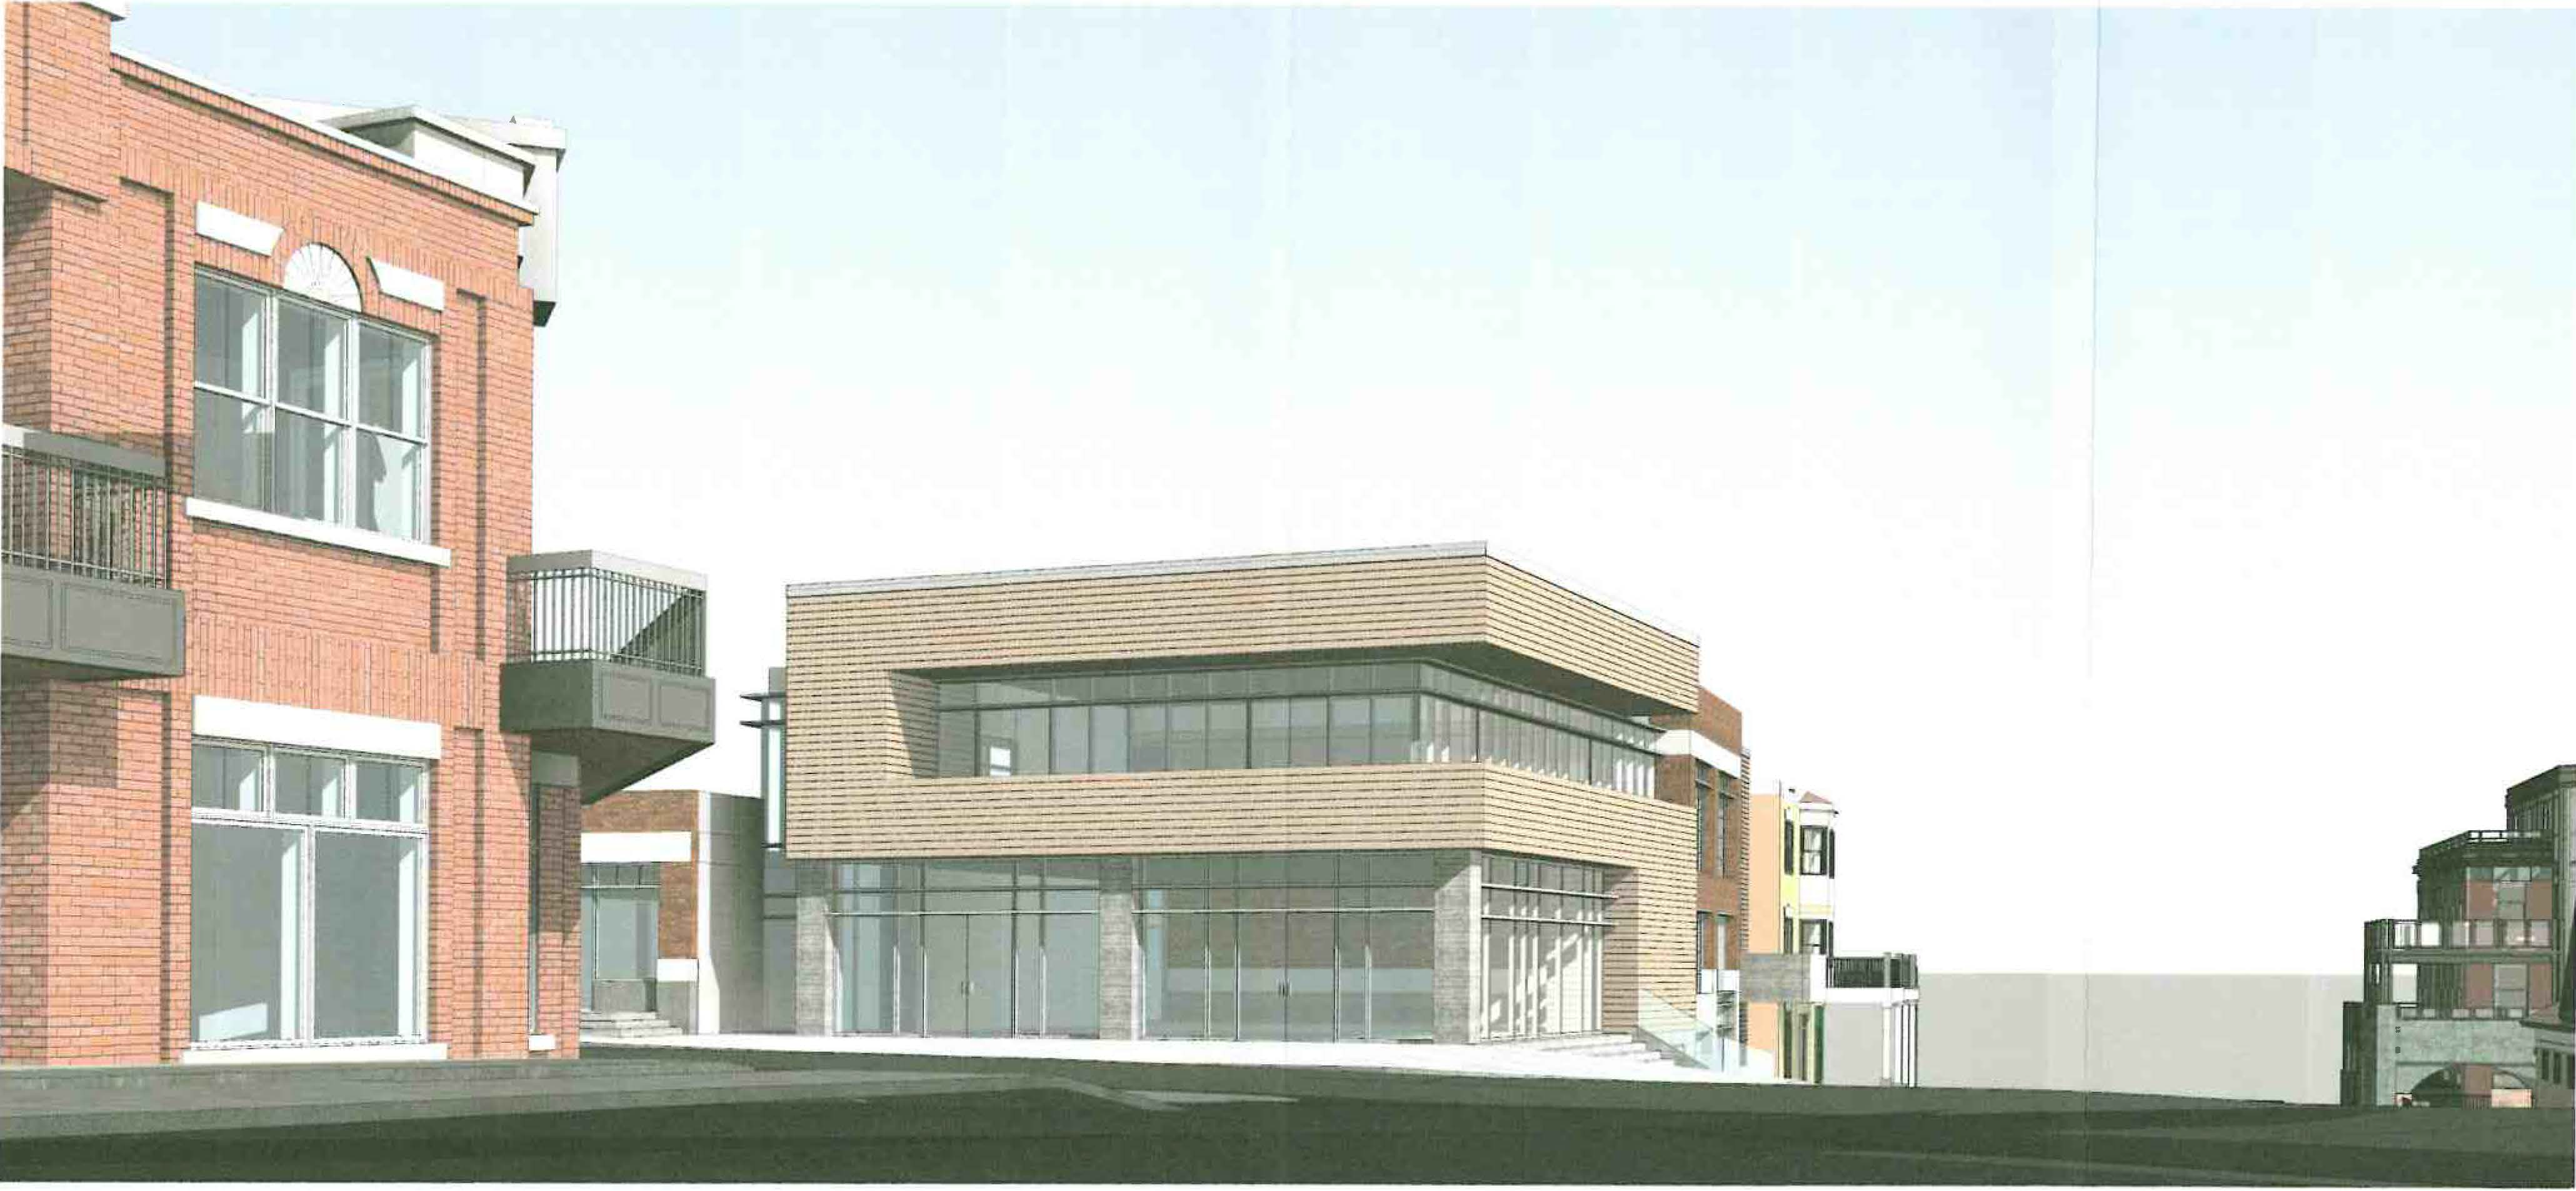 The designs to redevelop the historic property that once housed the Kimball Art Center drew a range of opinions as they were under consideration by City Hall. An expansion is planned onto what is now a patio at one corner of the intersection of Main Street and Heber Avenue. Courtesy of Park City Municipal Corp.